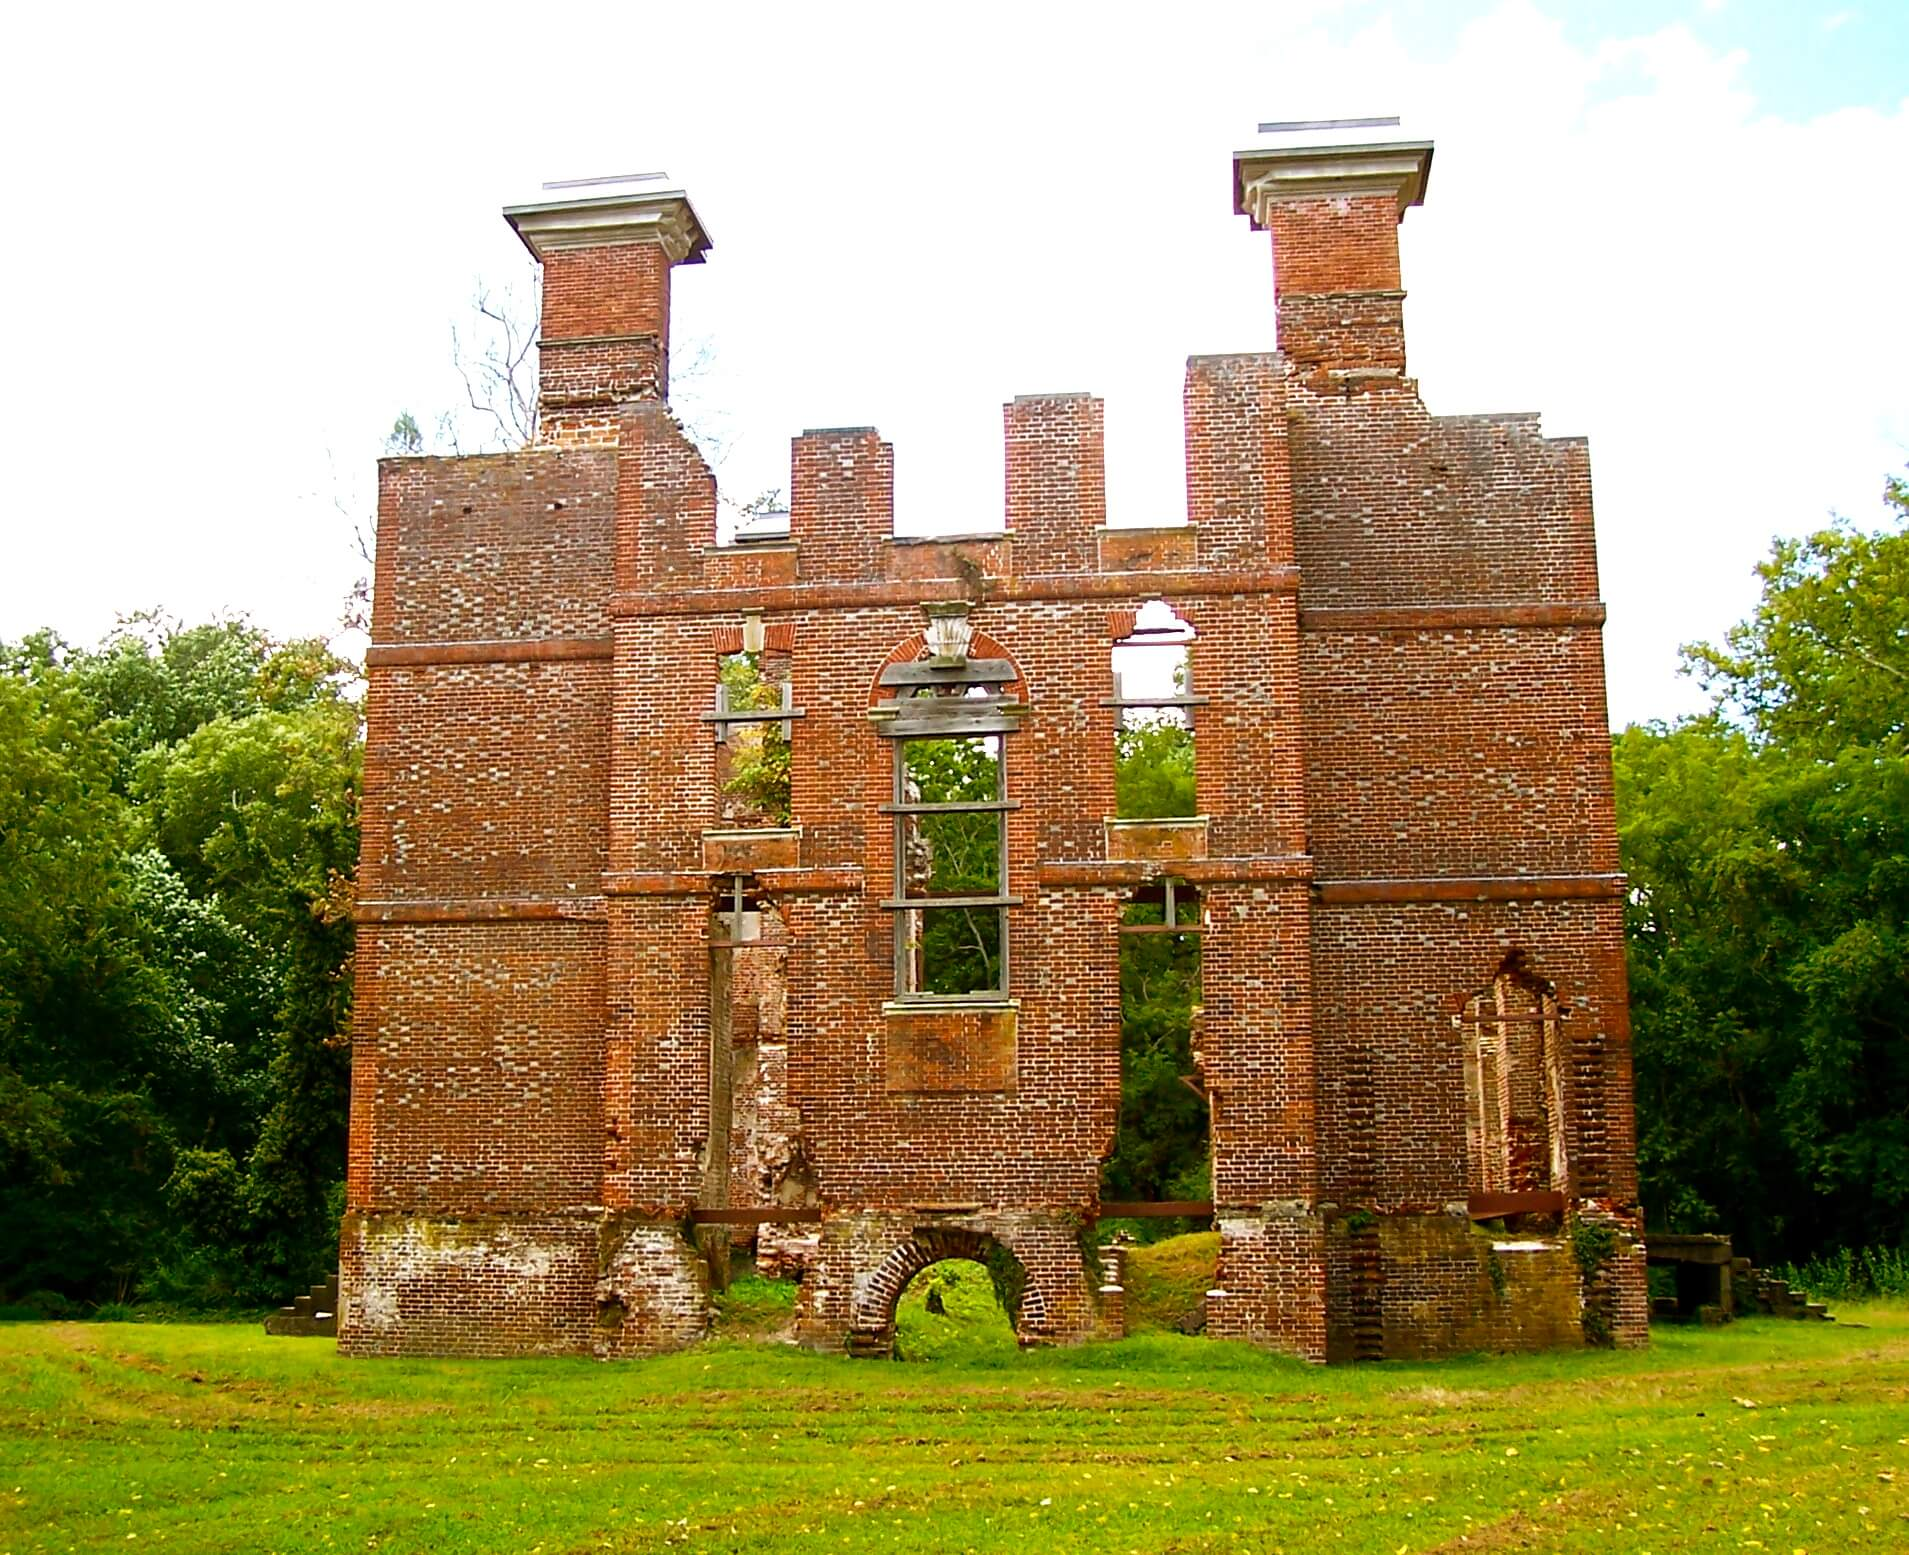 Rosewell in ruins. Photo Credit: By Agadant - Own work, CC BY-SA 3.0, https://commons.wikimedia.org/w/index.php?curid=8266259